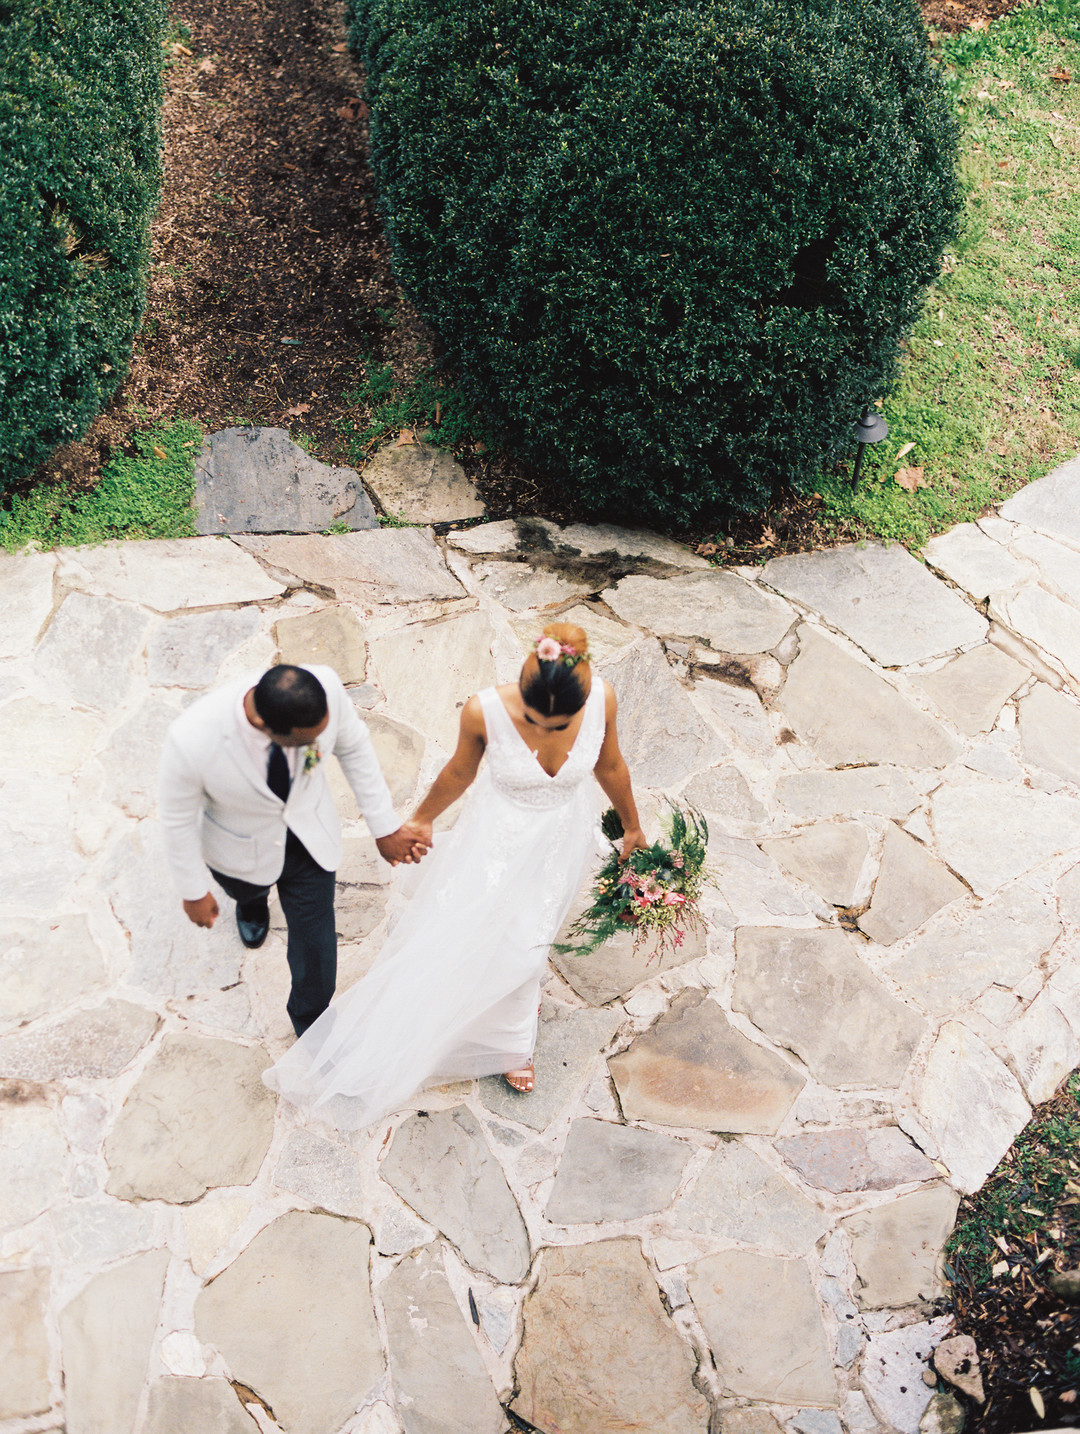 kc7wj7dooqt9hvxfto13_big Hot Springs, NC Wedding Inspiration at Mountain Magnolia Inn